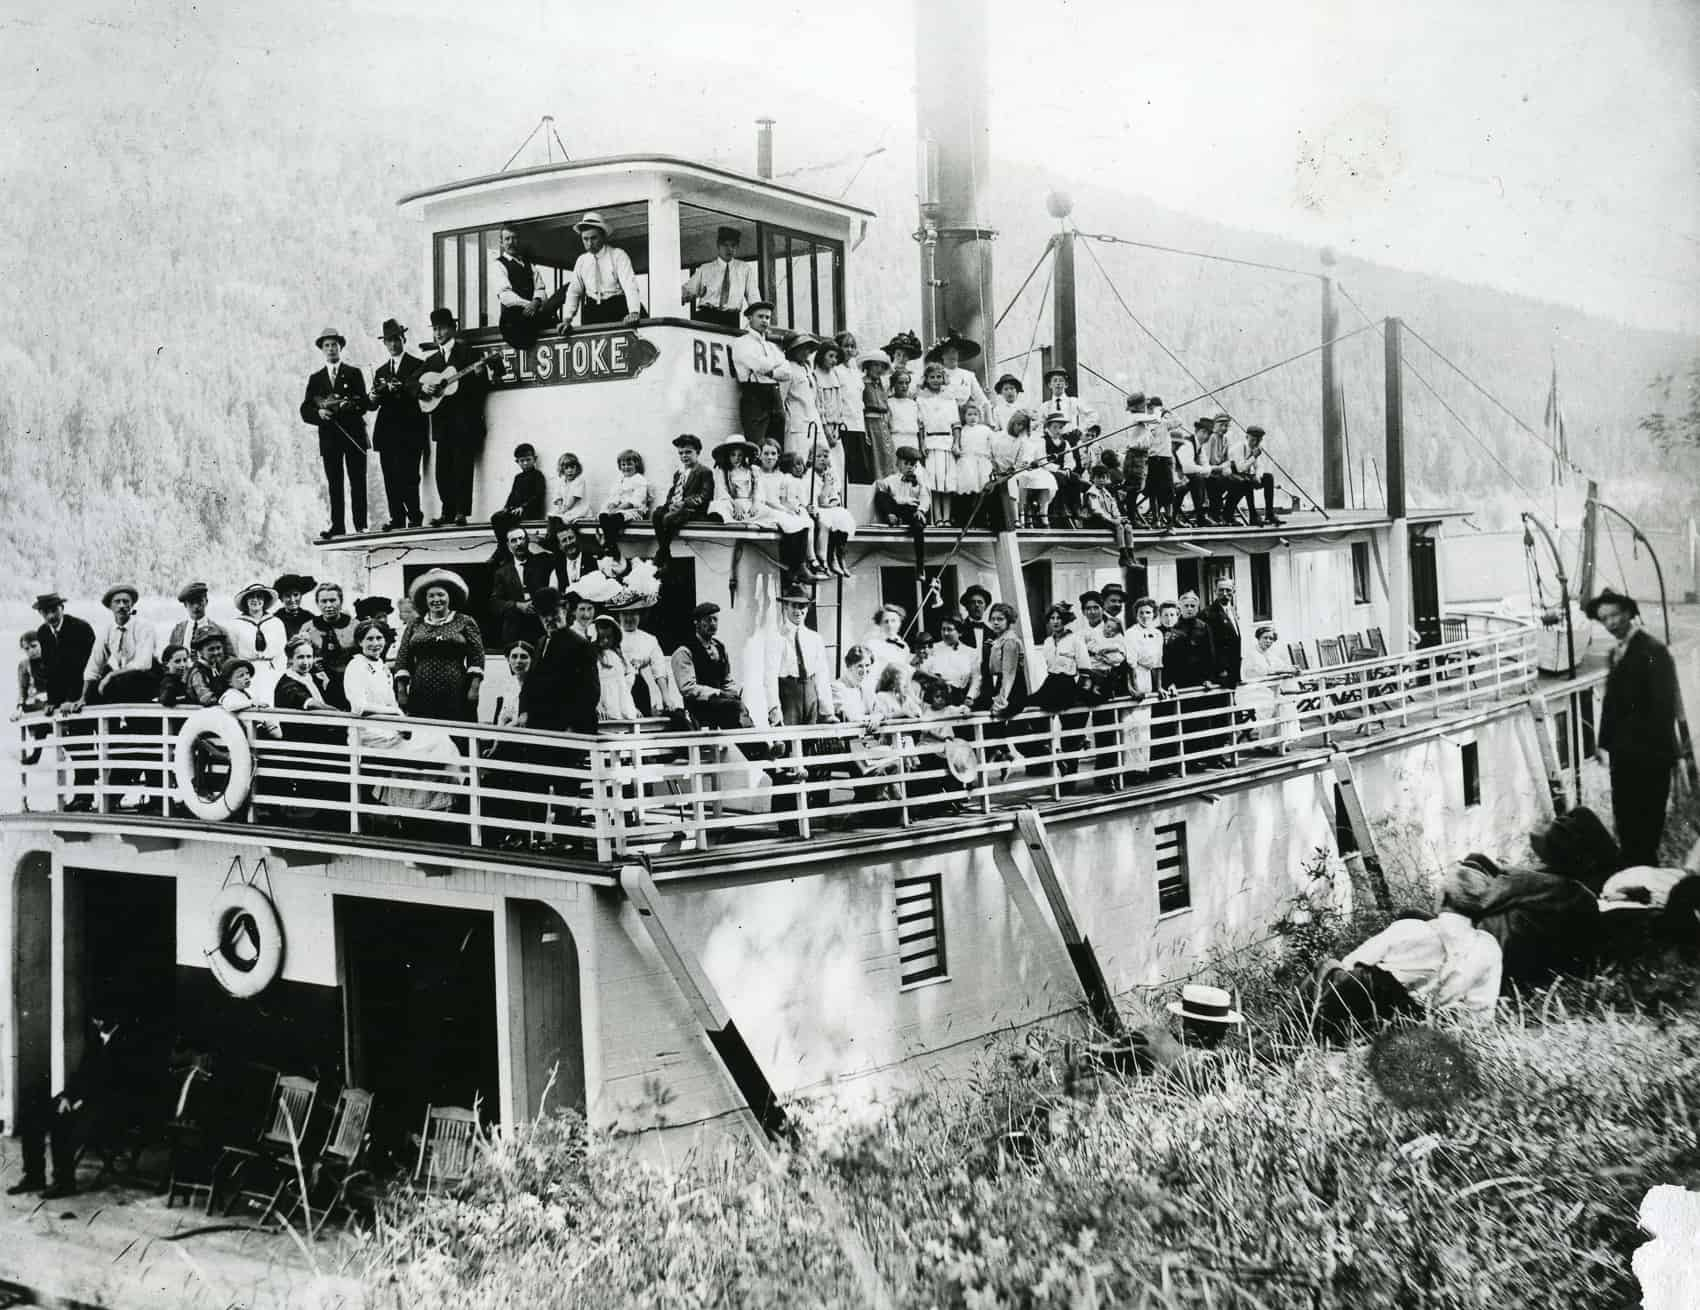 About Revelstoke - Third image section - Historic Revelstoke steam ship on Columbia River